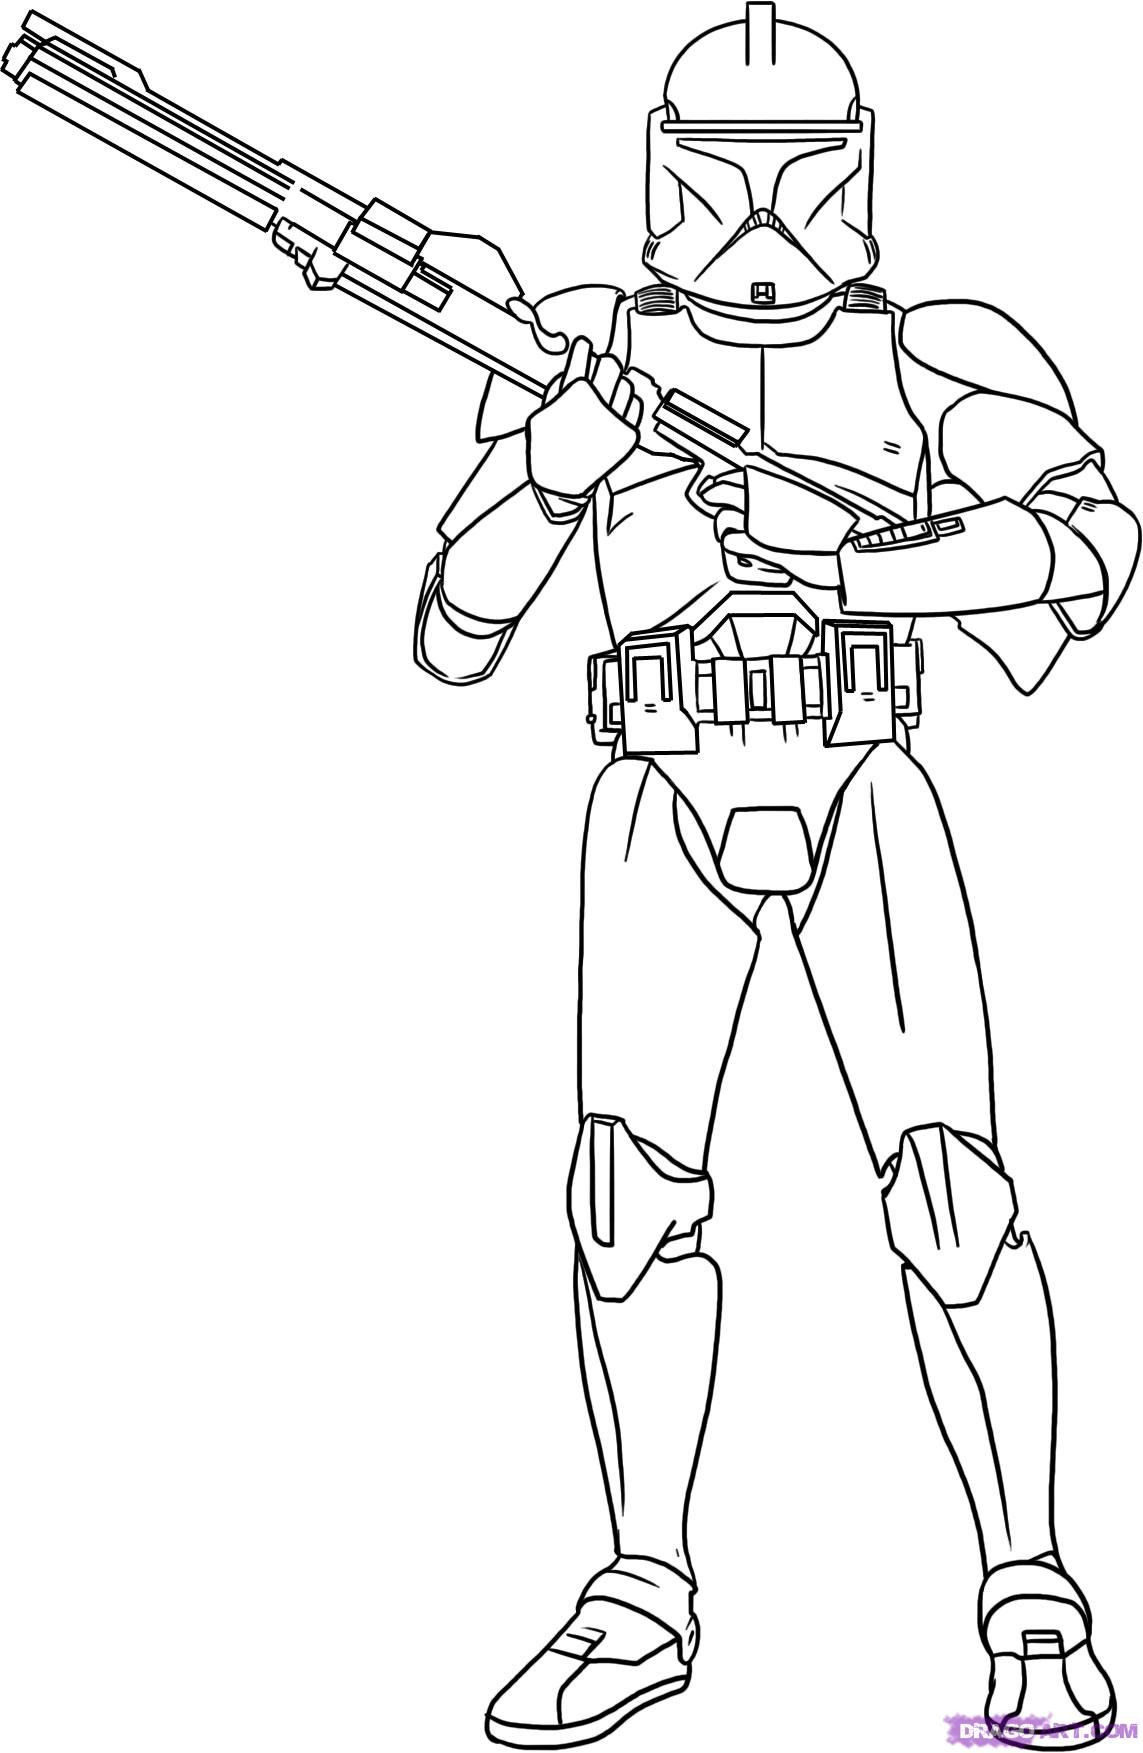 Best ideas about Star Wars Clone Wars Coloring Pages . Save or Pin star wars pictures to color Now.